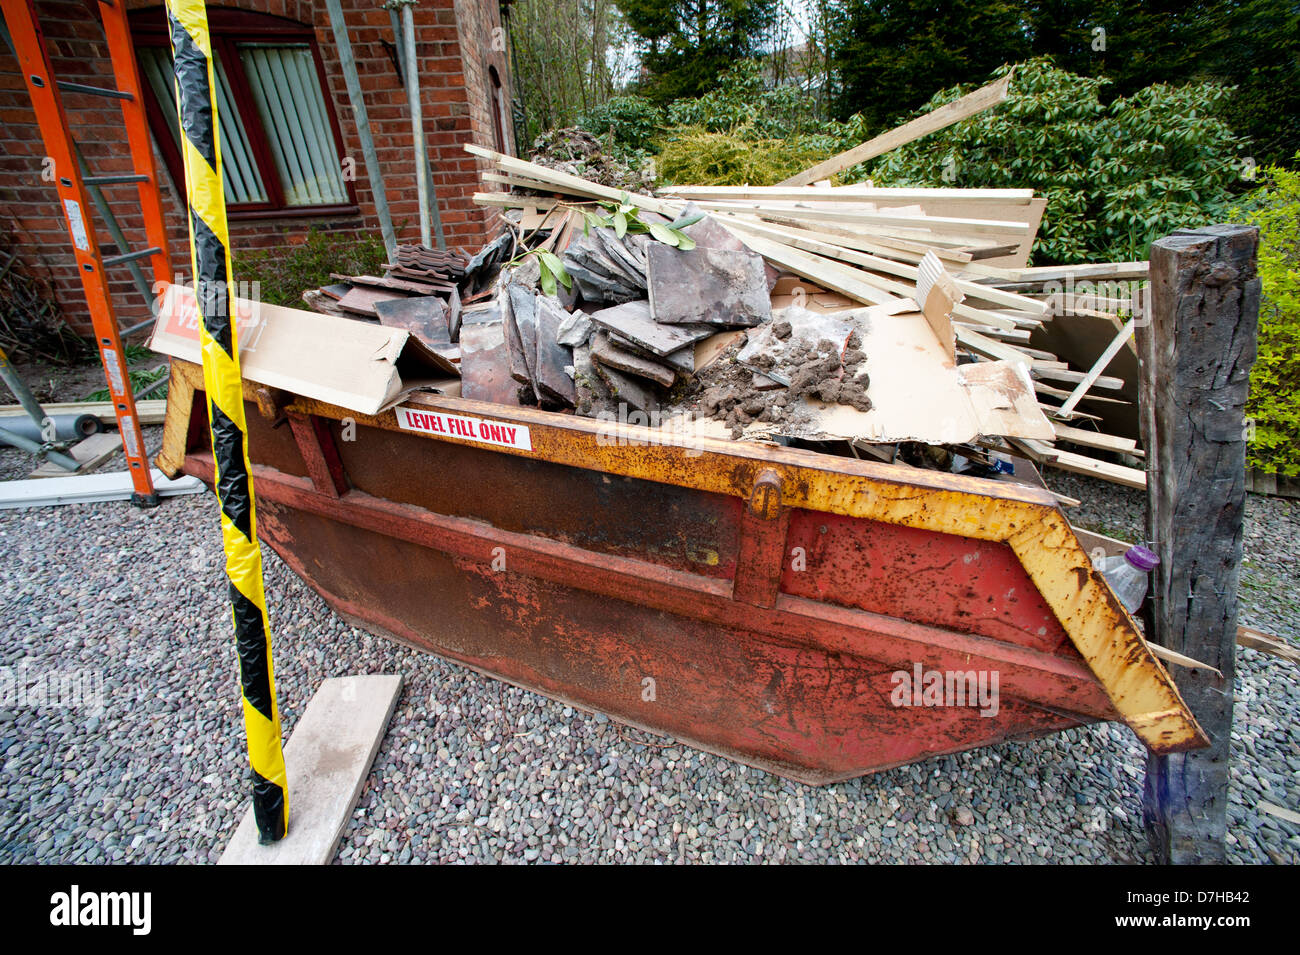 Construction work on a house - Stock Image